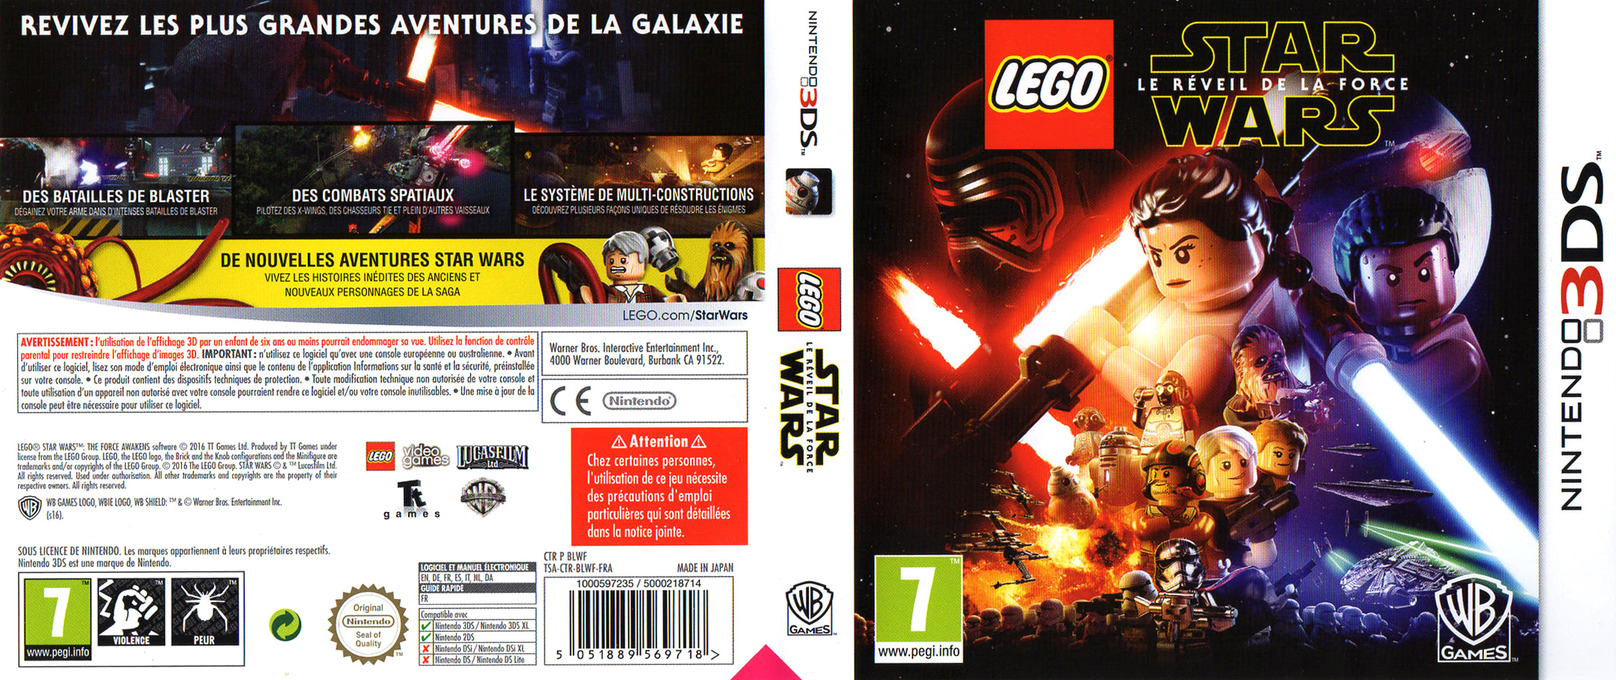 LEGO Star Wars: The Force Awakens 3DS coverfullHQ (BLWF)